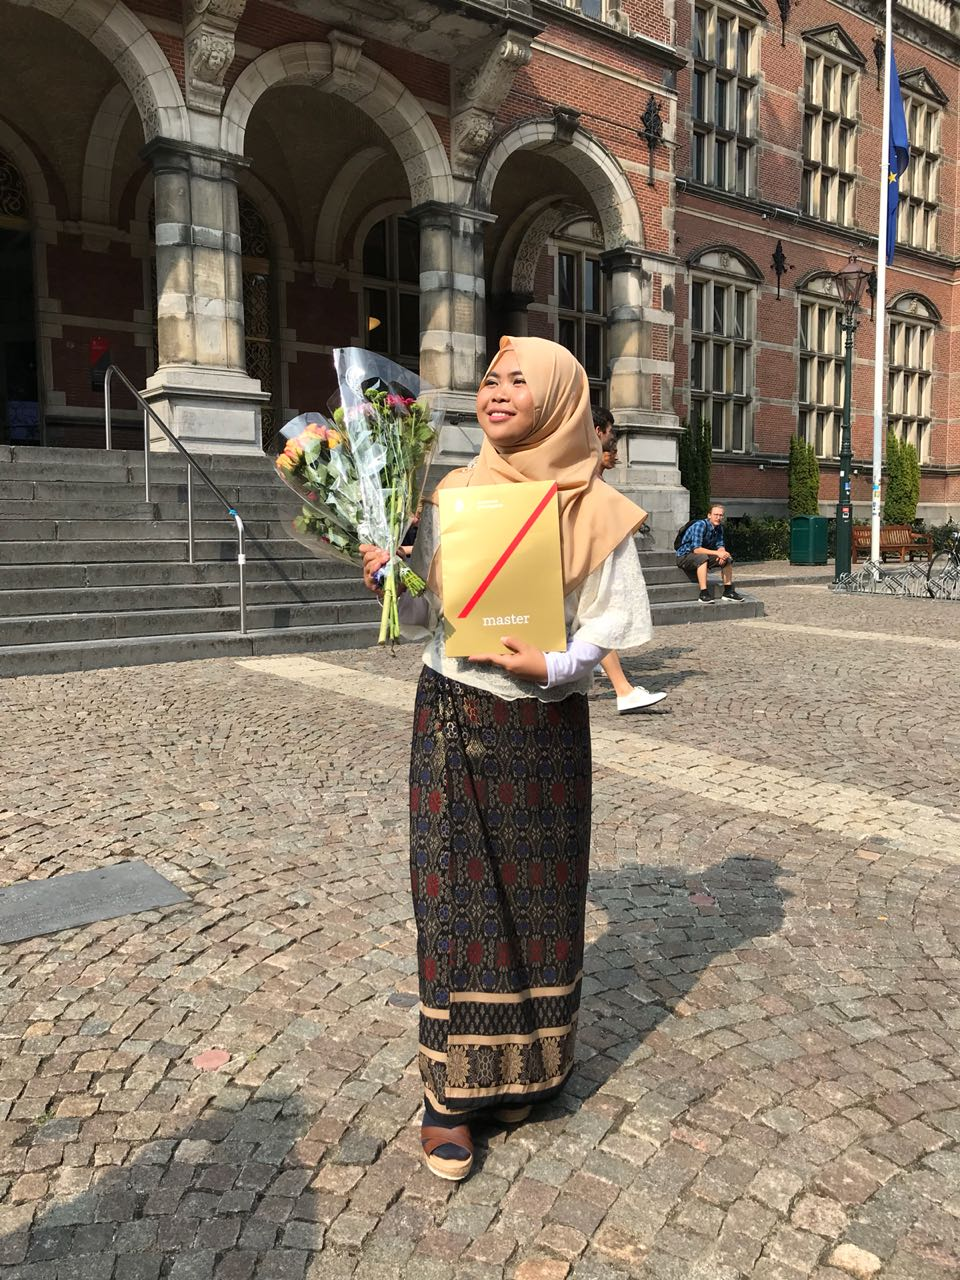 Puji's graduation day at the University of Groningen, the Netherlands